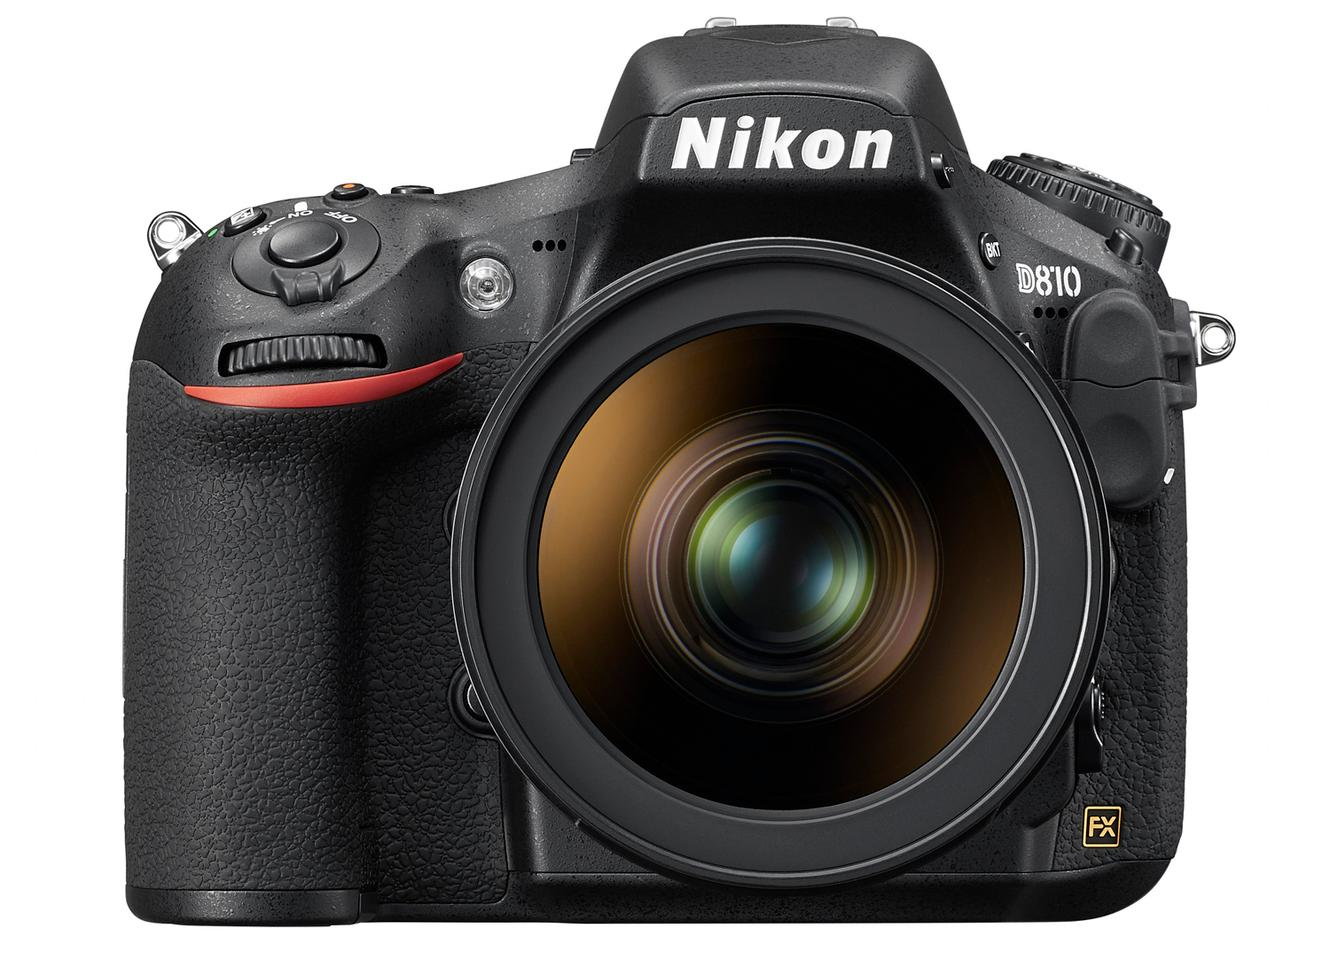 The Nikon D810 features a new 36.3-megapixel full-frame FX-format (35.9 x 24.0 mm) CMOS sensor